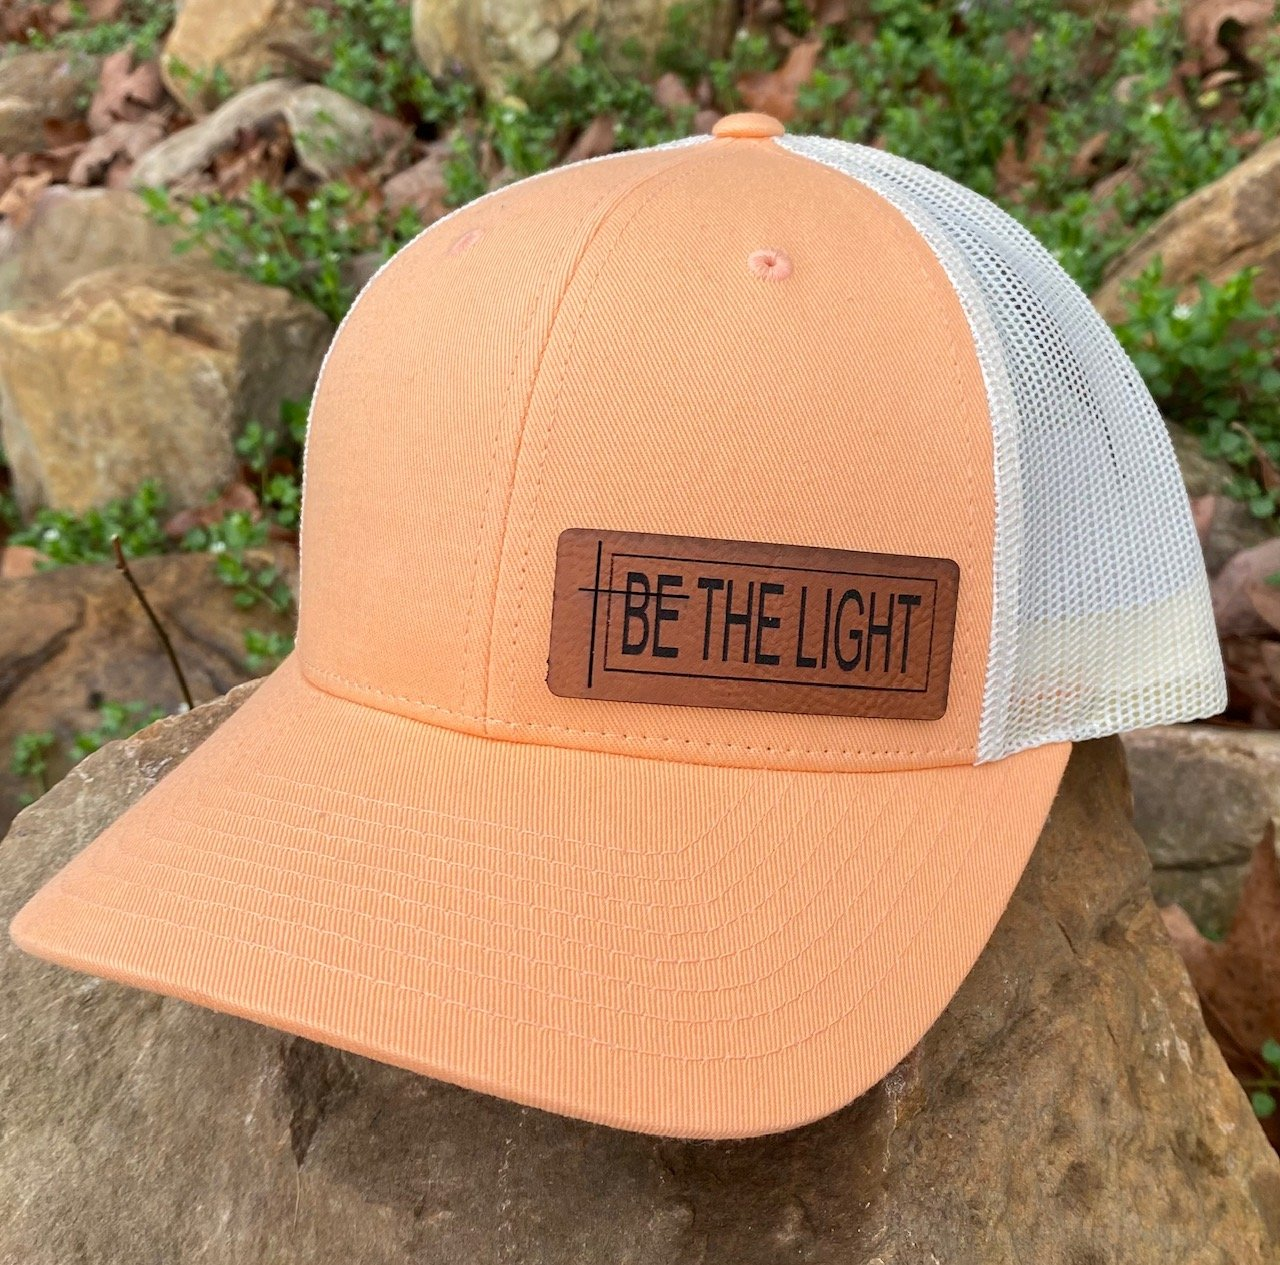 LHP0017 Be the Light Leather Engraved Hat Patch 2.75x1.1